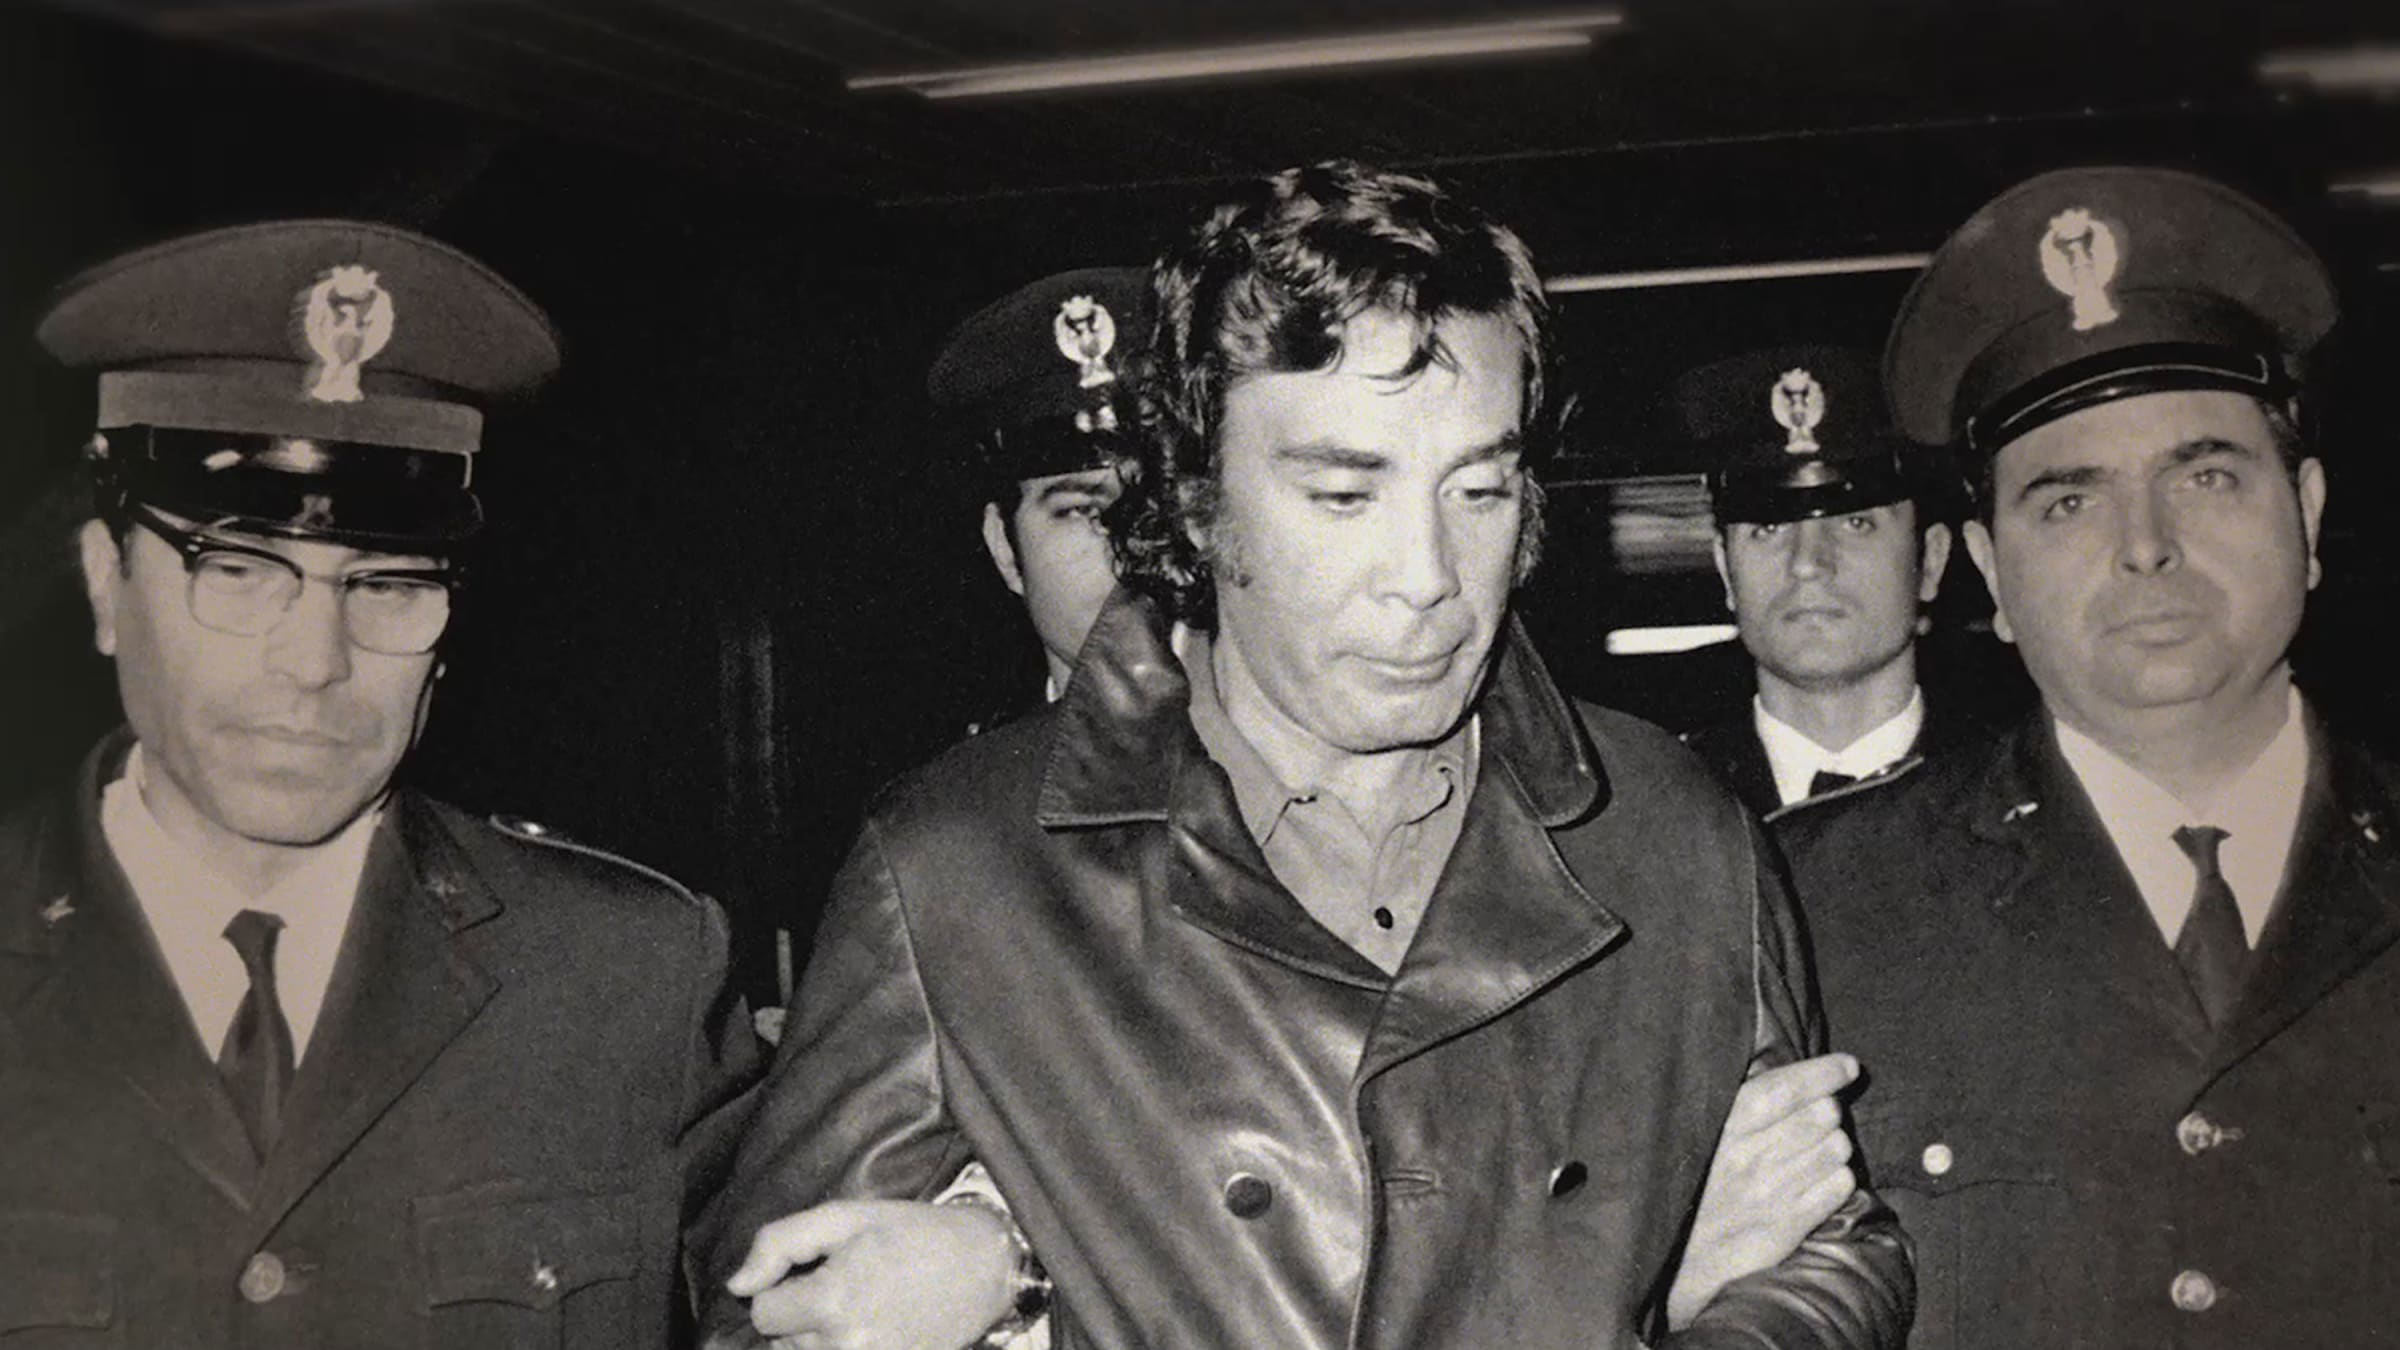 Family of Most Dangerous Mafia Turncoat Tommaso Buscetta Comes Out of Hiding: 'Just a Call Would Kill Us All'